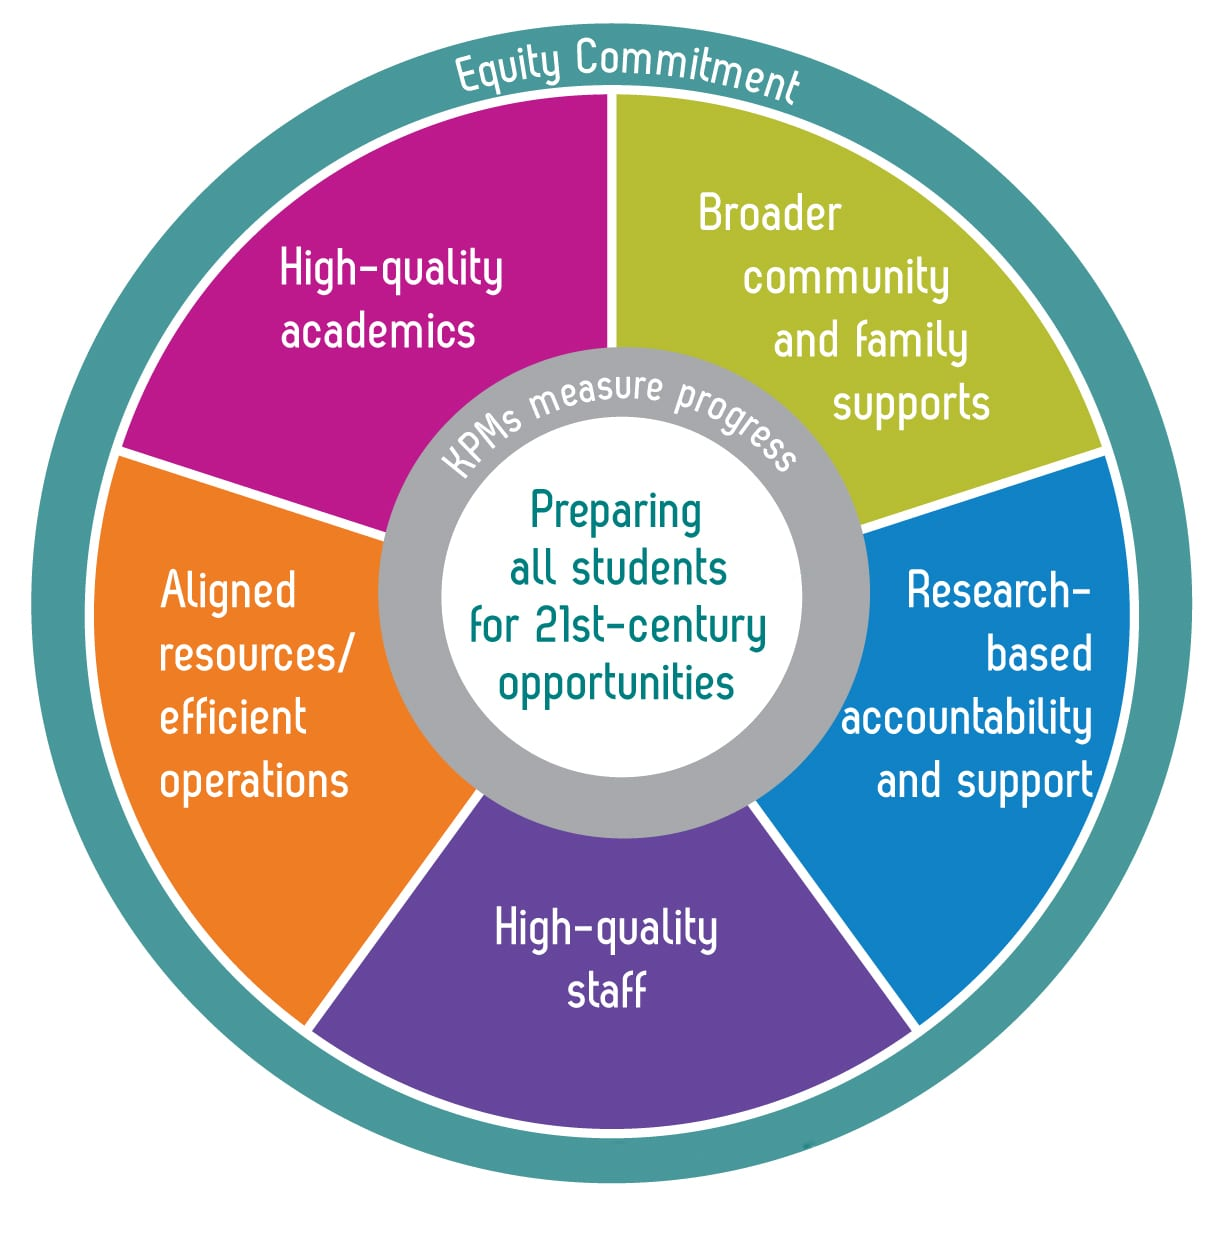 Equity commitment - Educational equity